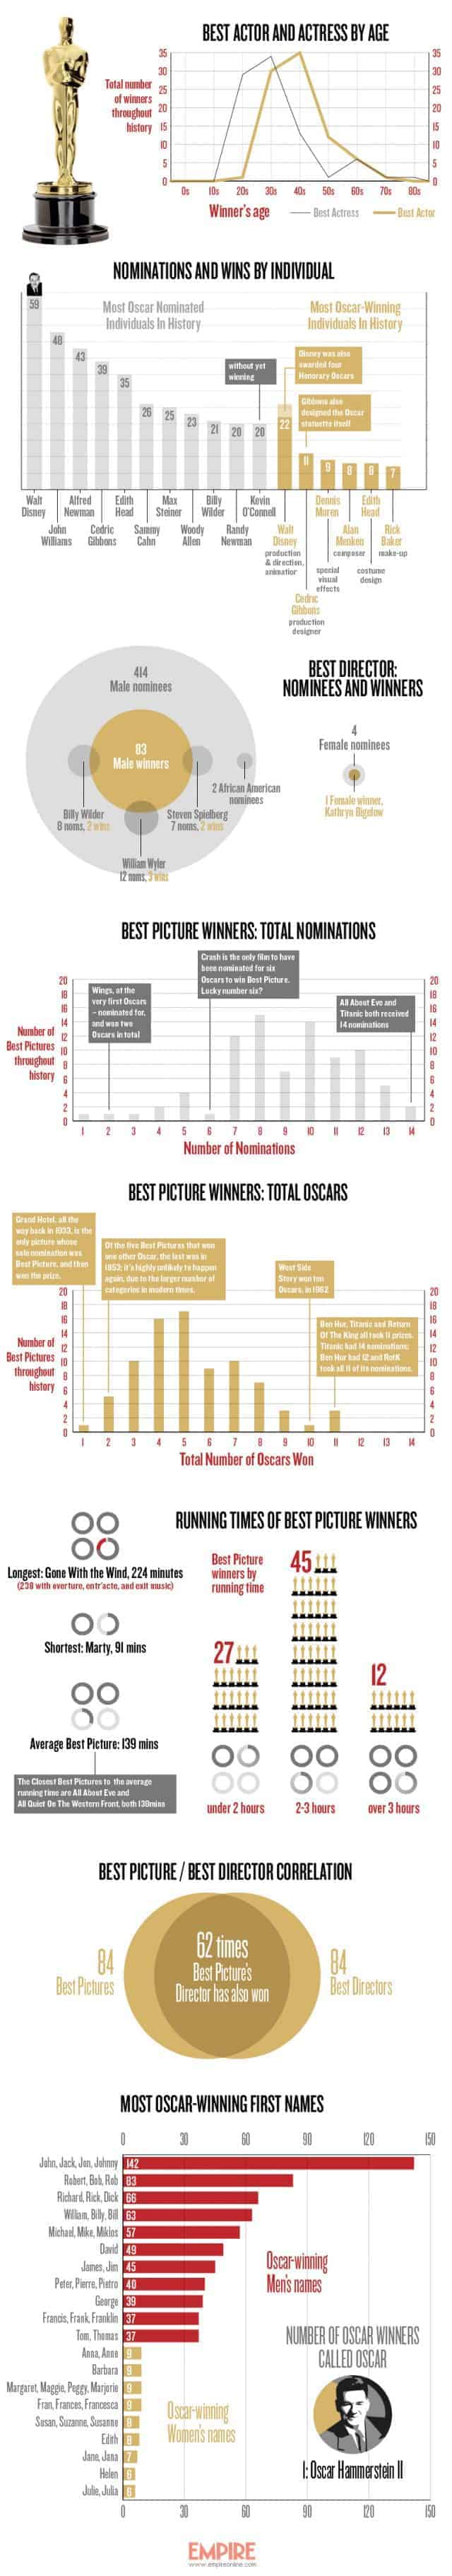 empire-oscars-by-numbers-infographic1-640x3645